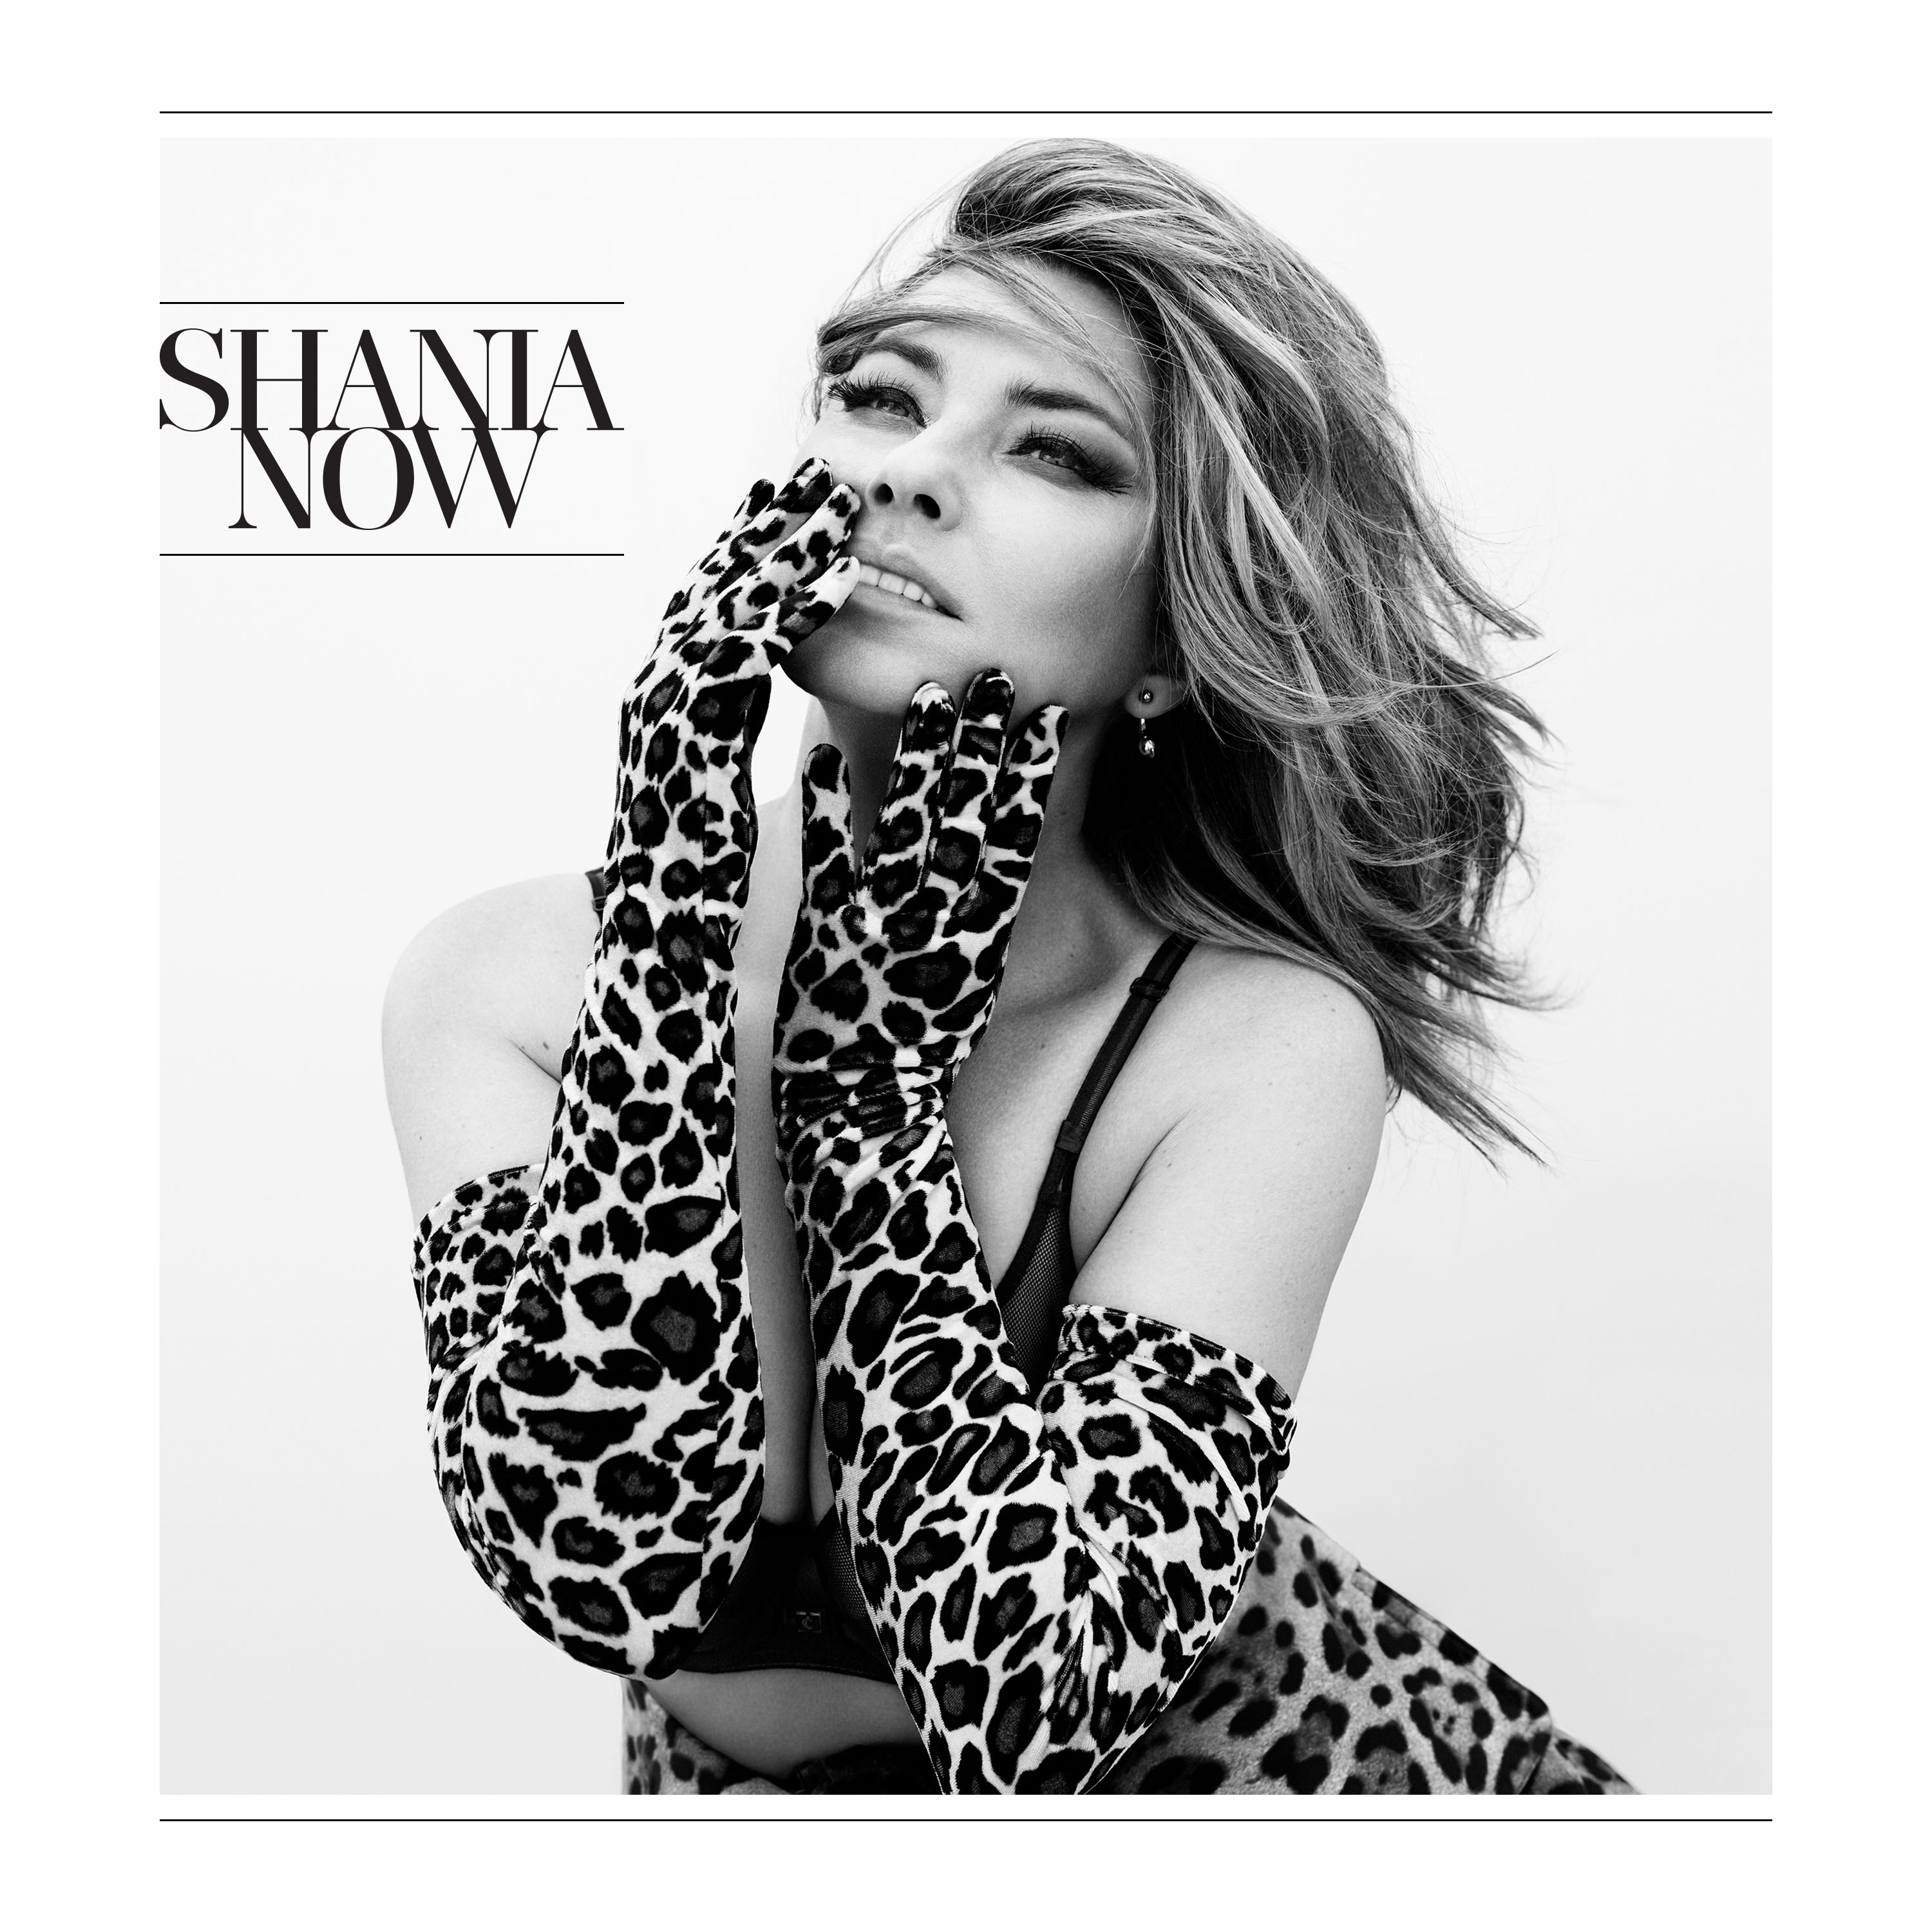 Shania Twain; Cover art courtesy Universal Music Group Nashville